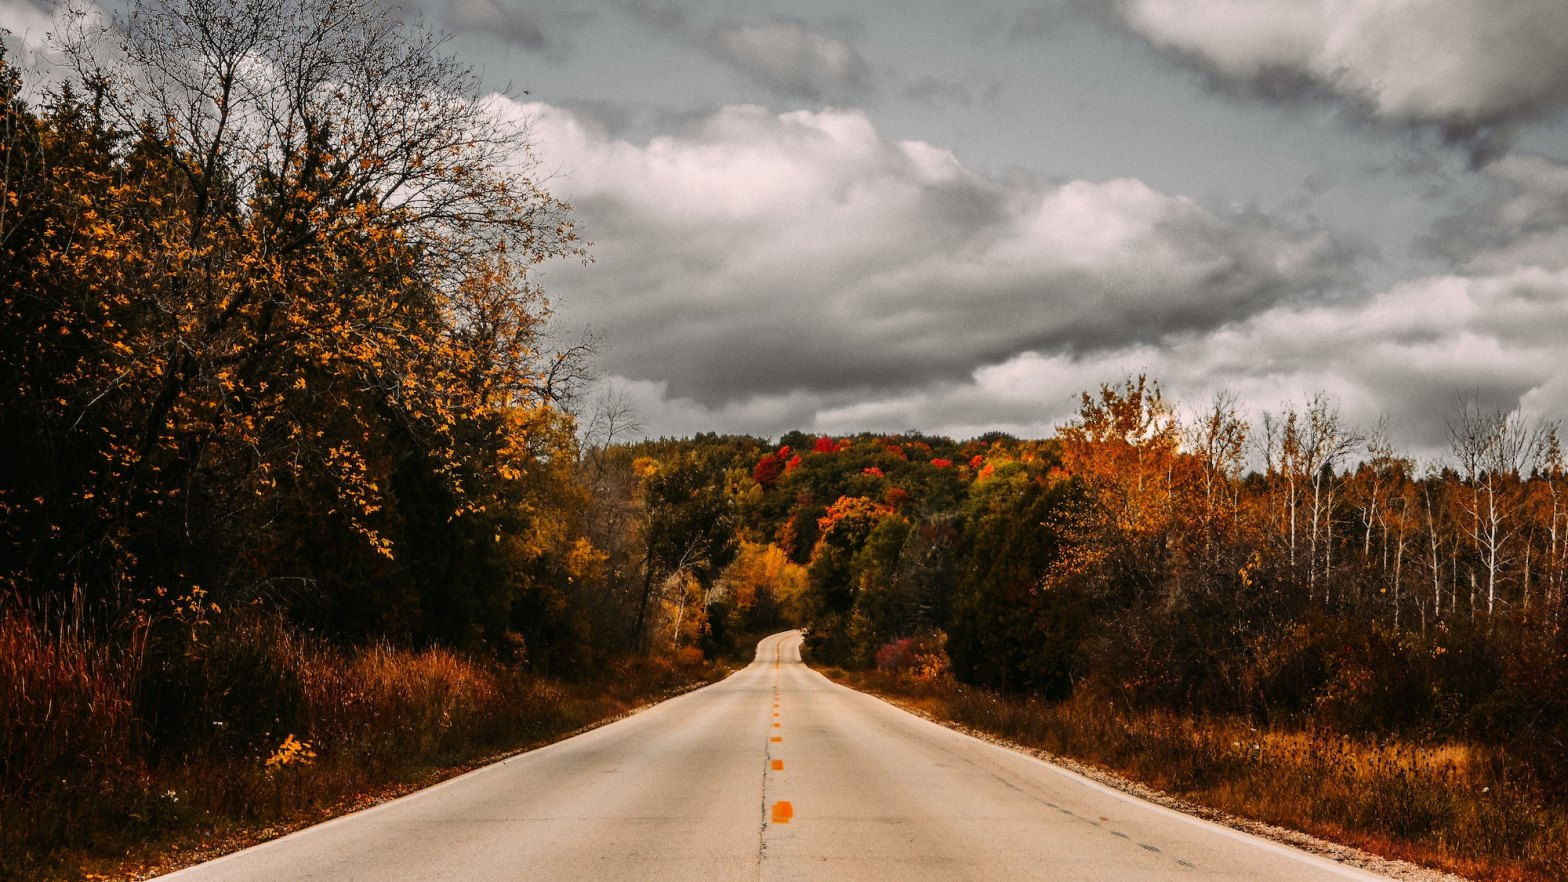 Road leading towards cloudy skies